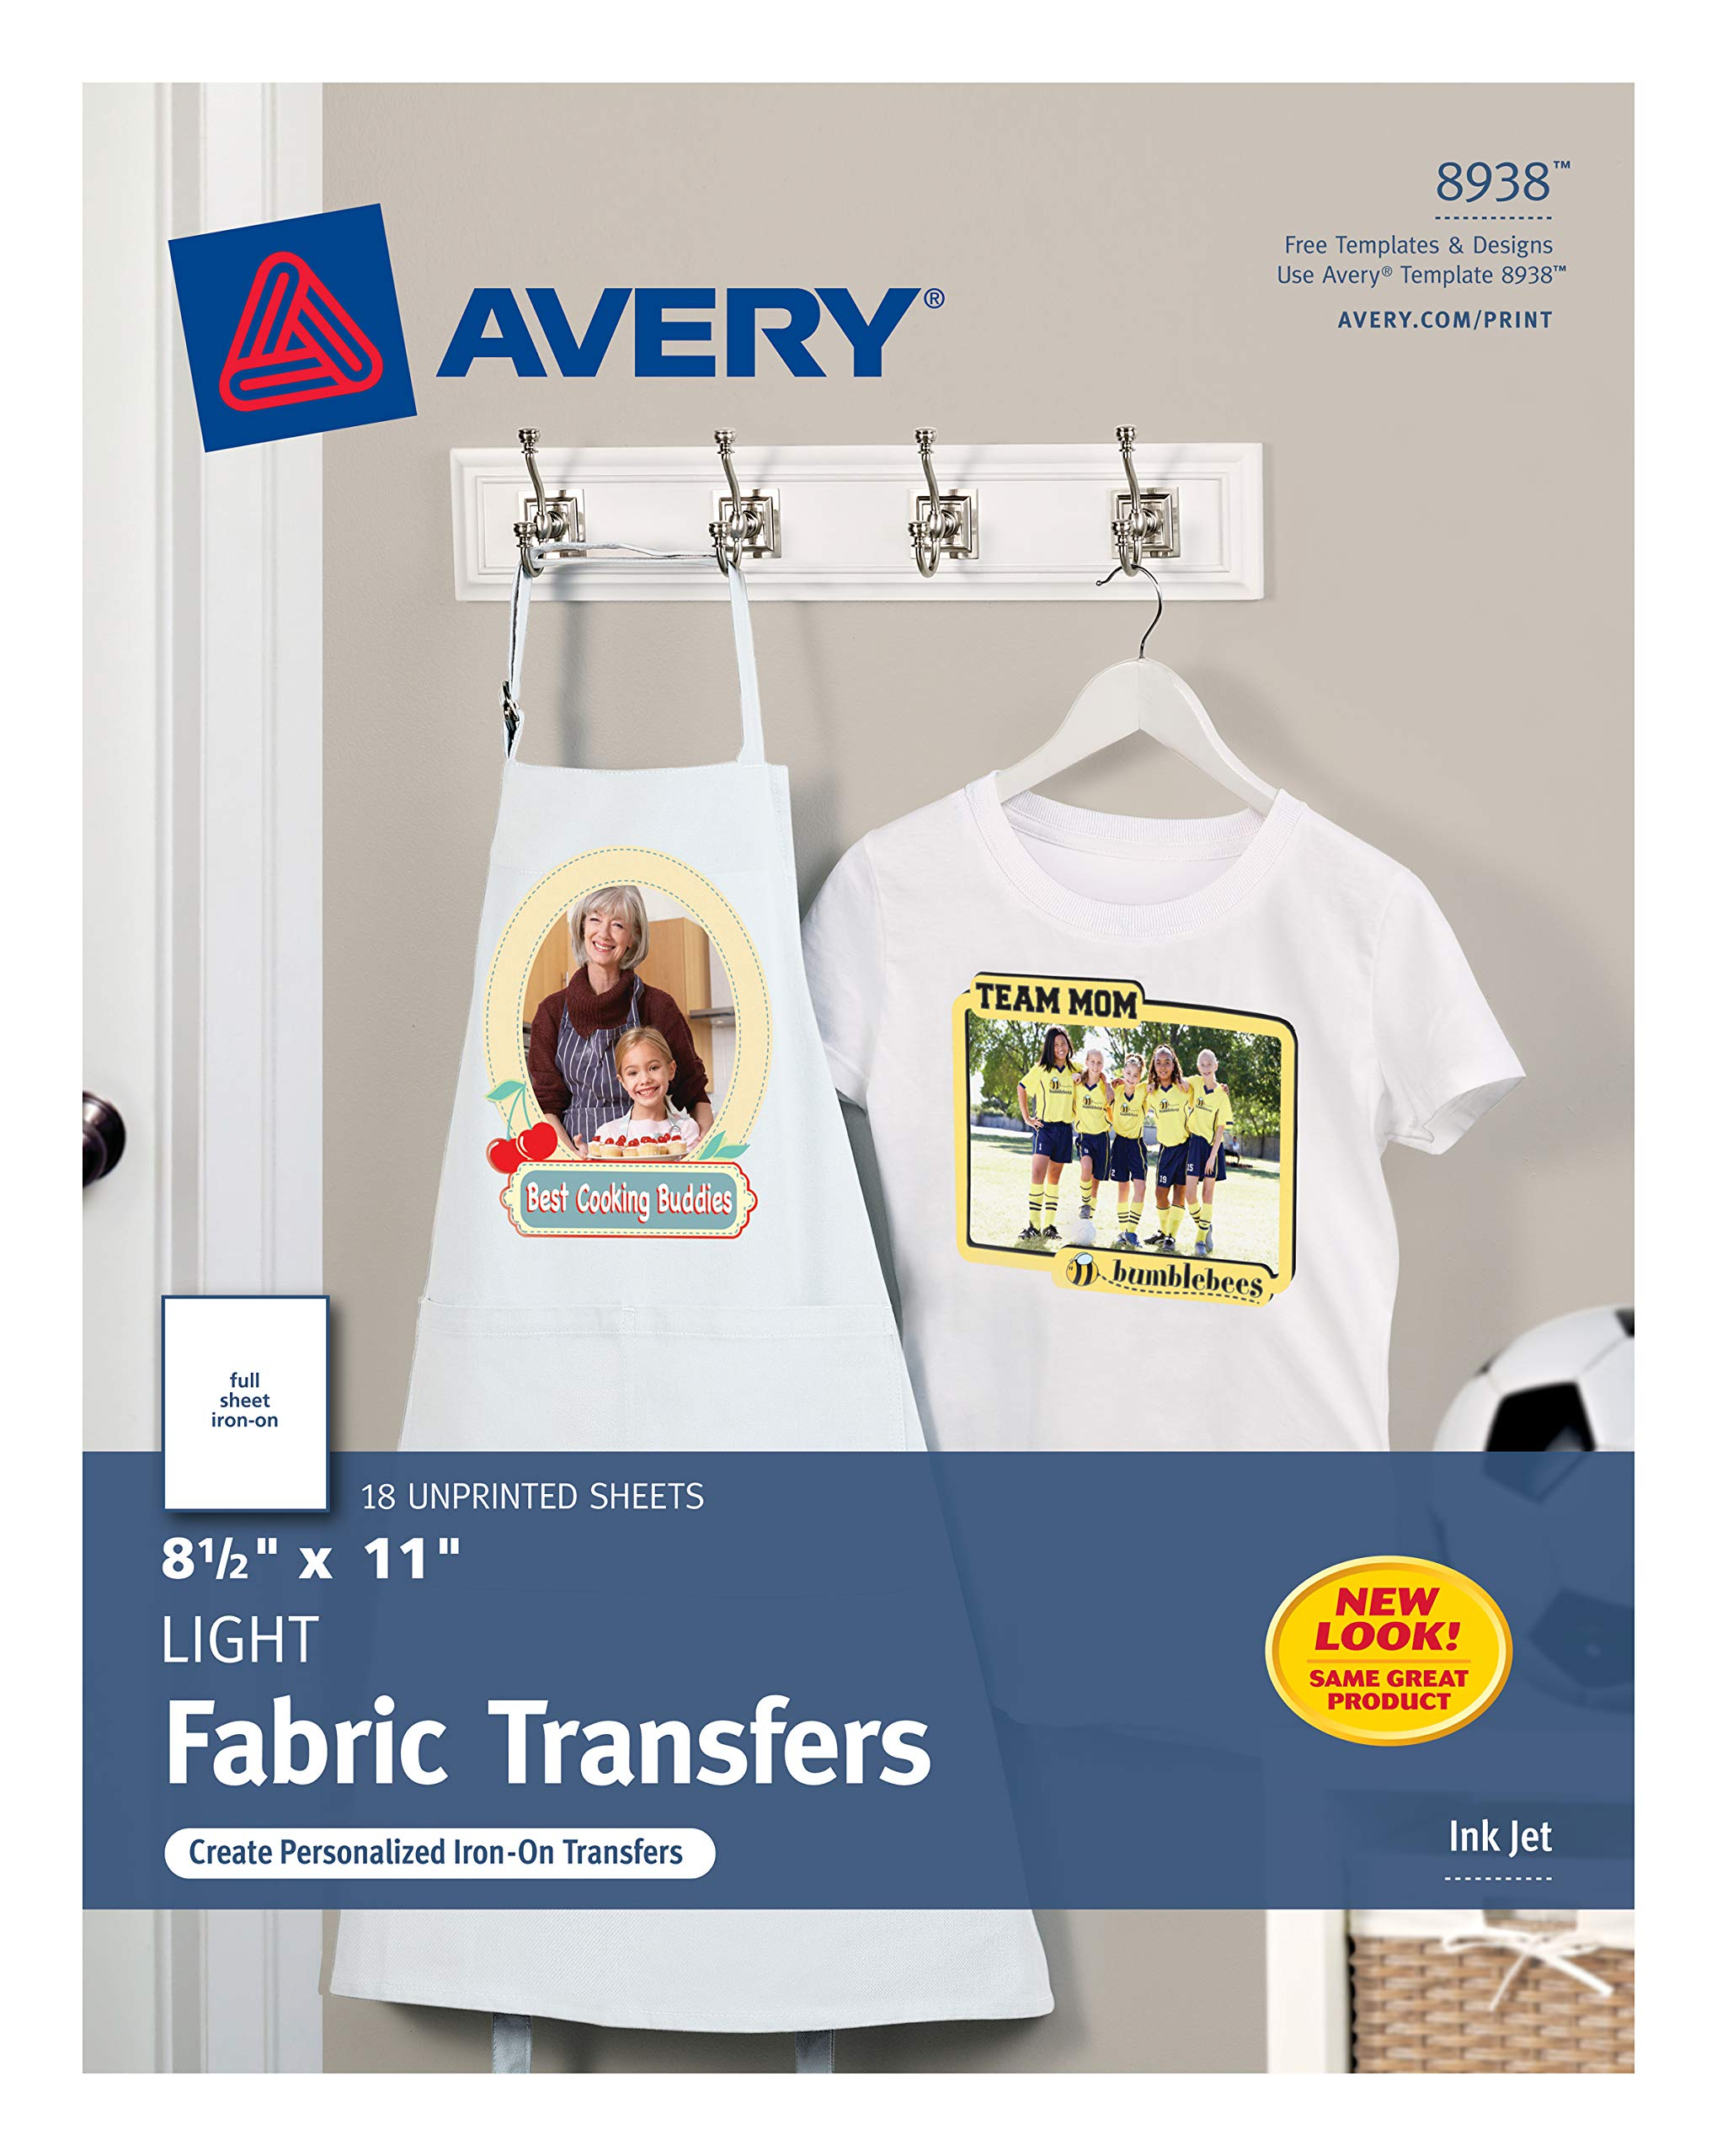 Avery T-Shirt Transfers for Light Fabric, 8.5'' x 11'', 18 Sheets (8938)